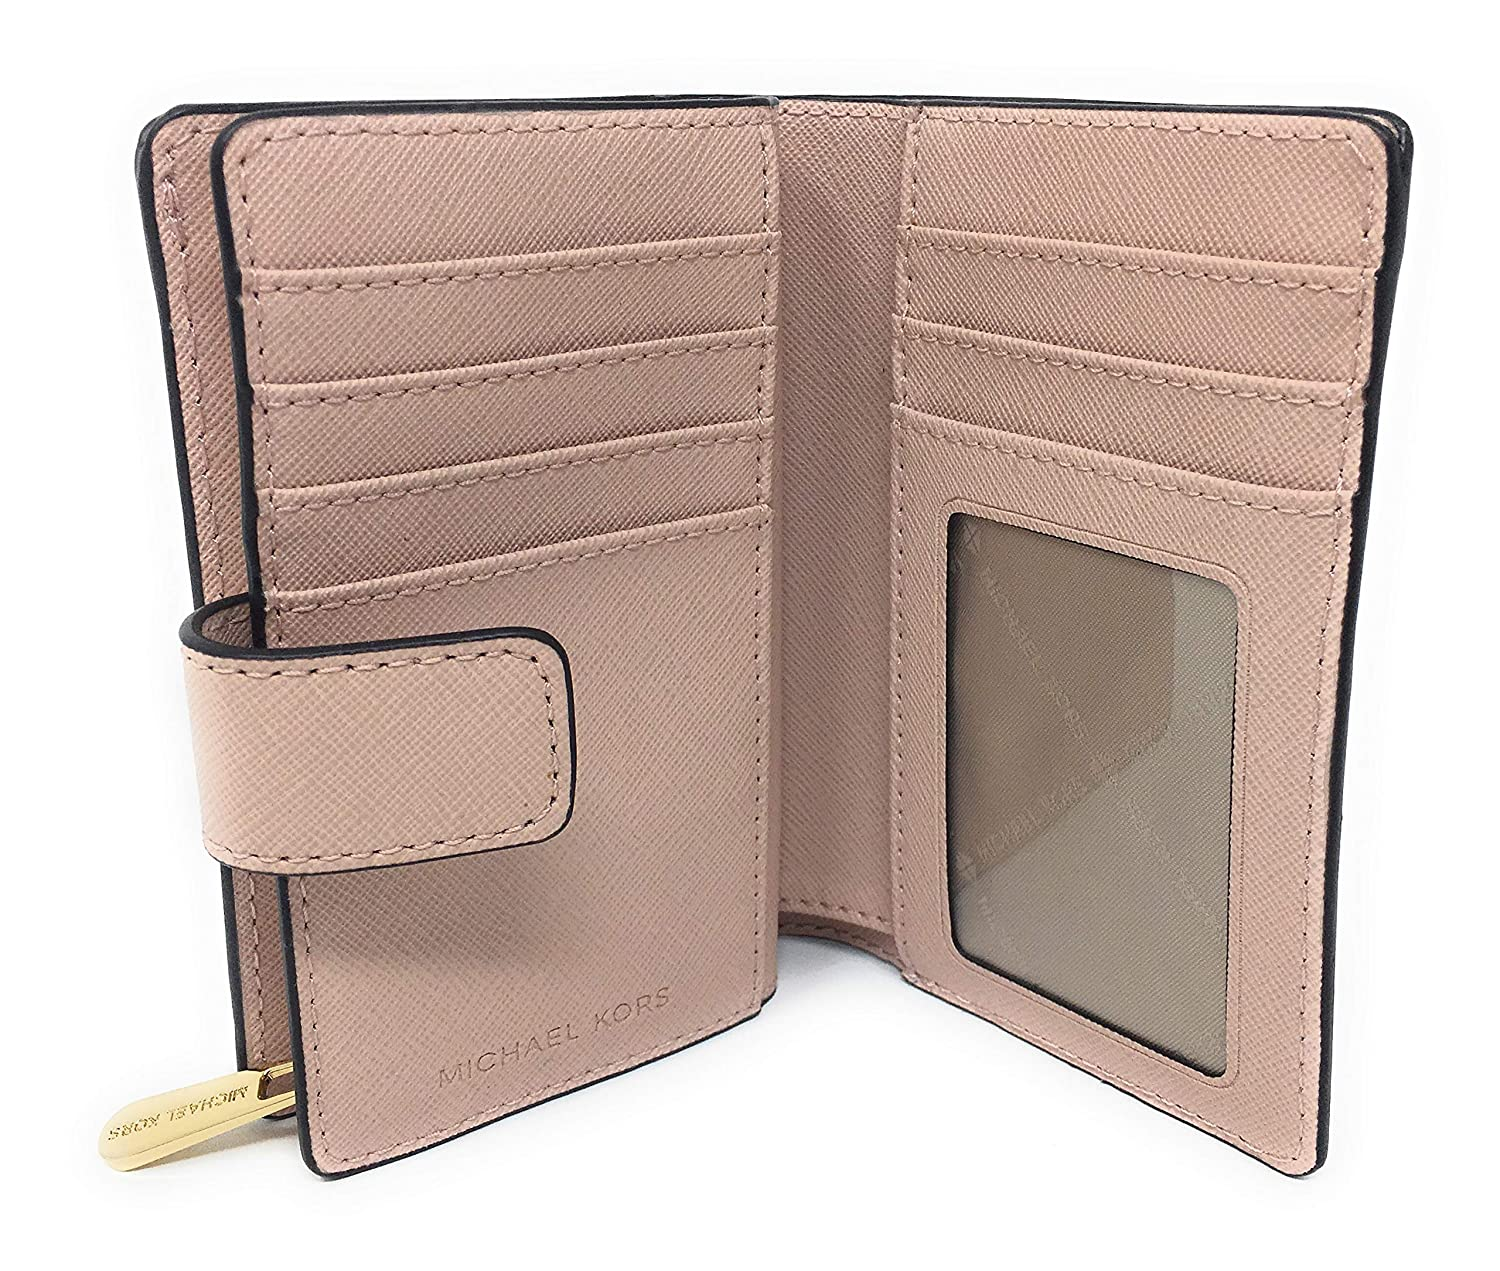 be080de7c151 Michael Kors Jet Set Travel Saffiano Leather Bifold Zip Coin Wallet  (Ballet) at Amazon Women's Clothing store: